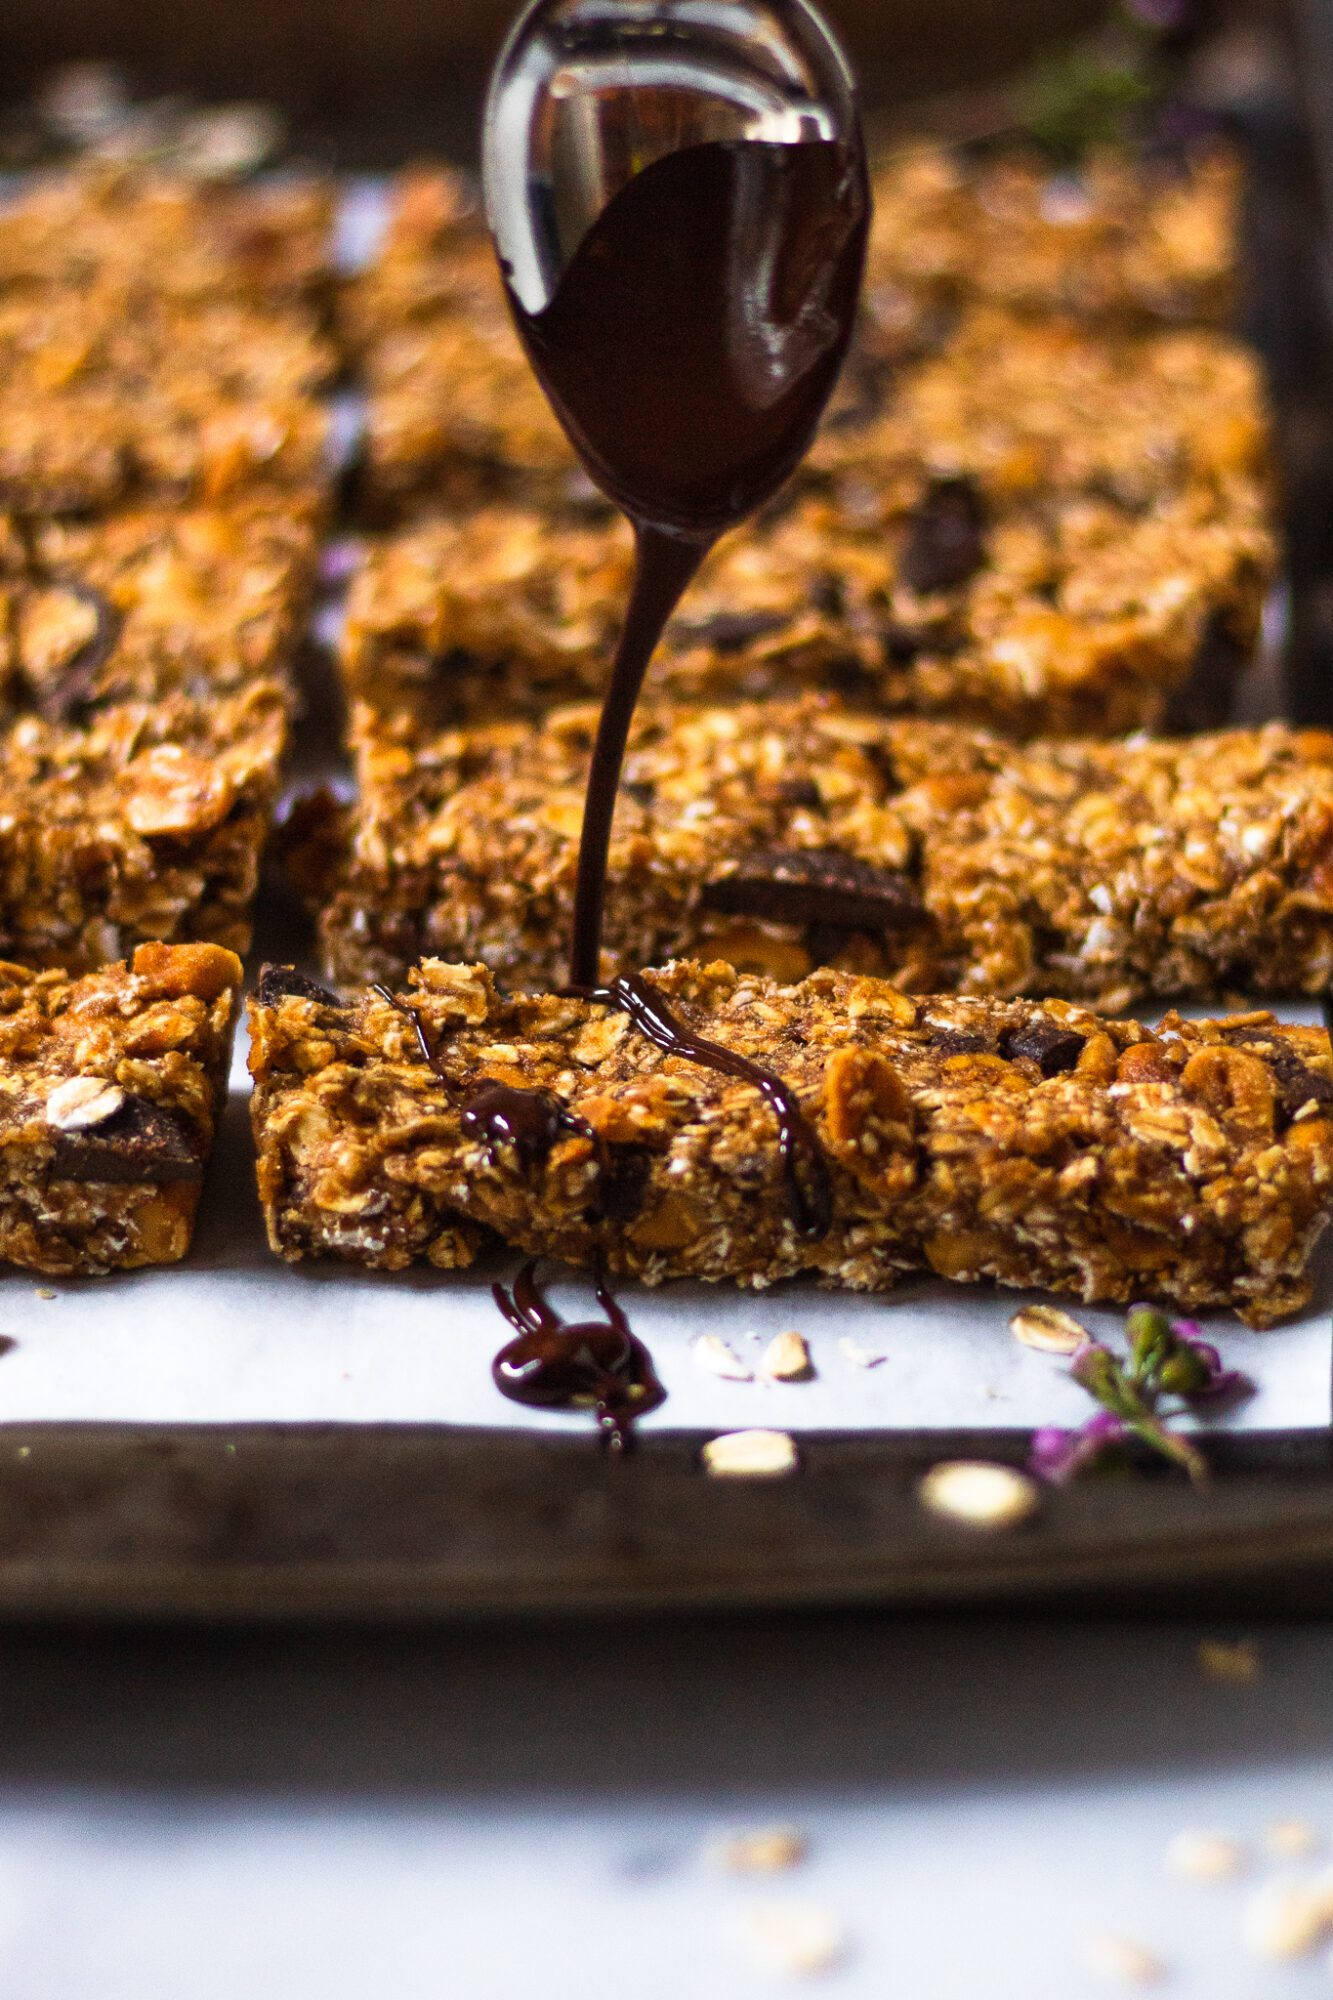 spoon drizzling chocolate over no bake granola bars